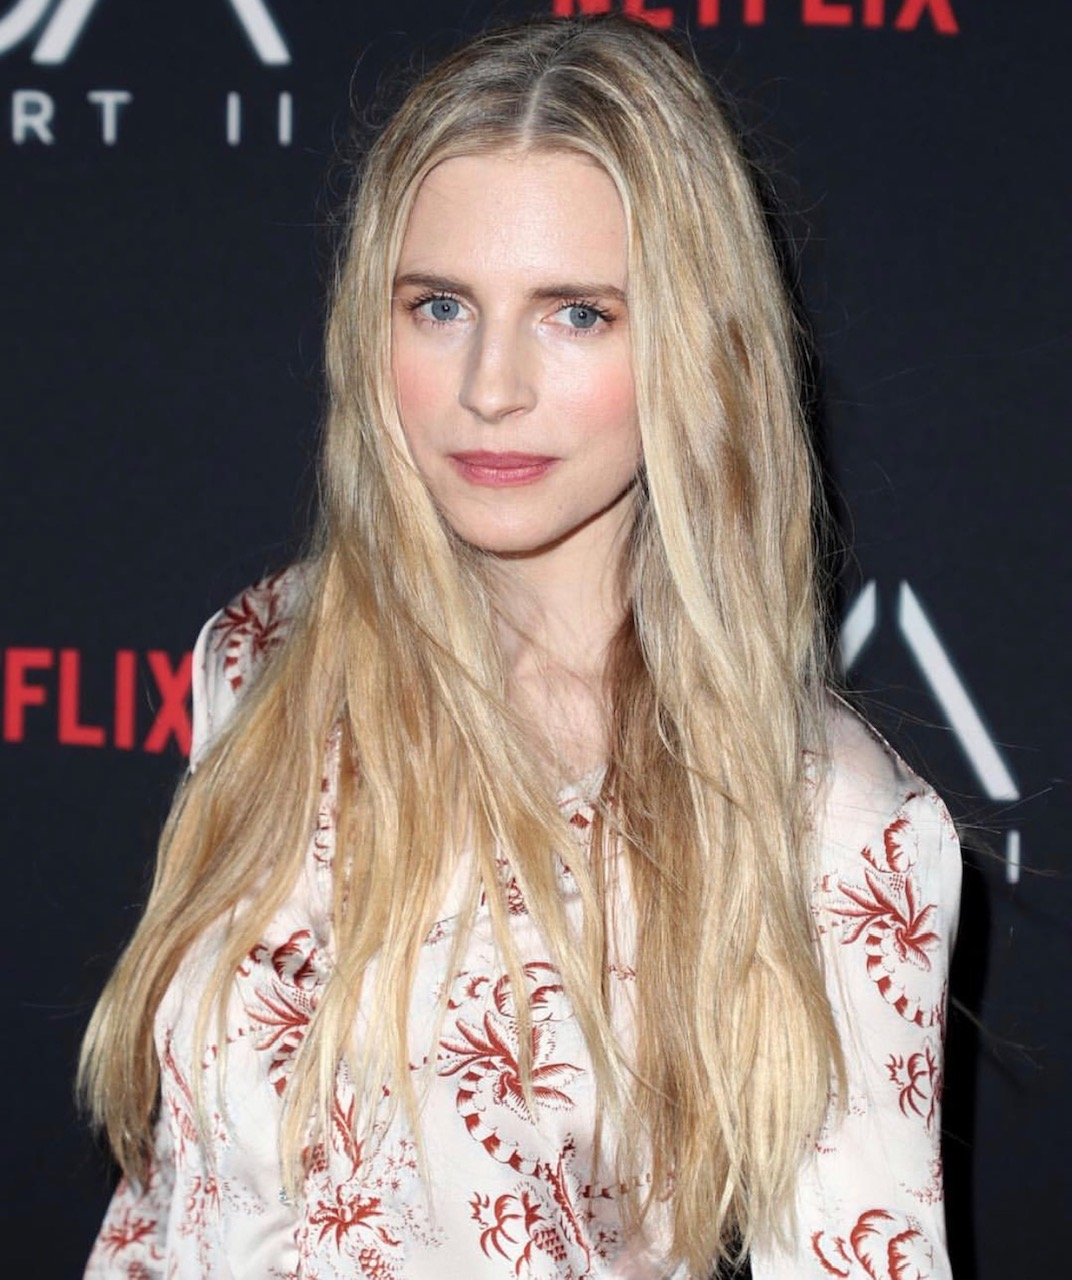 Brit Marling x The OA Part II Premiere at LACMA